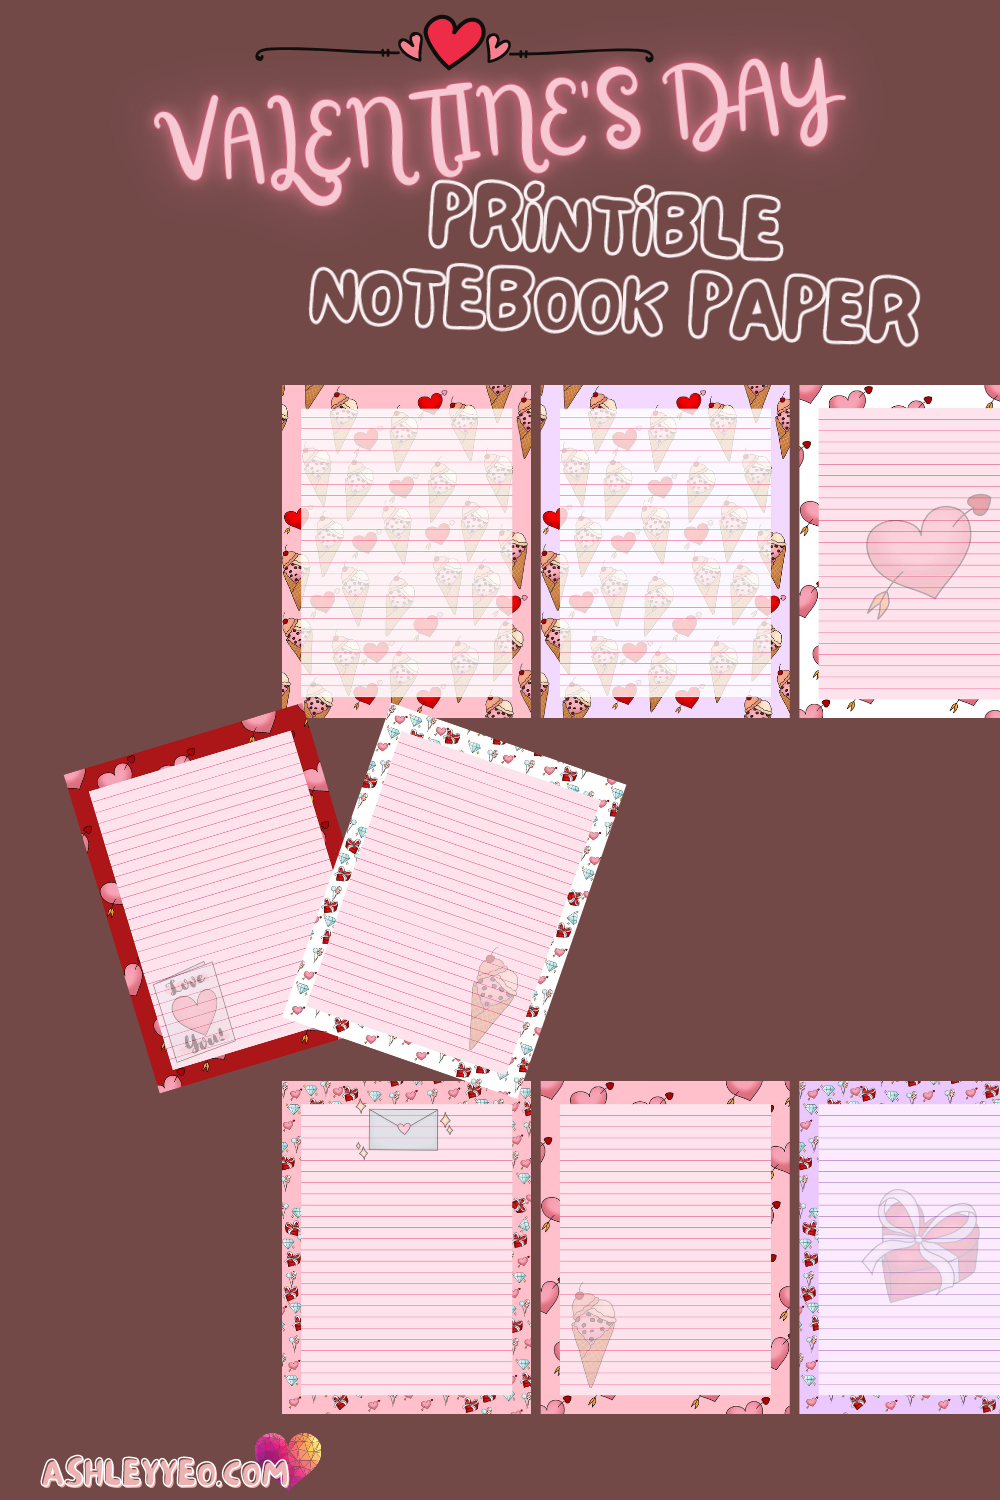 Valentine's Day Printable Journal Pages, Planner Pages, Notebook Pages